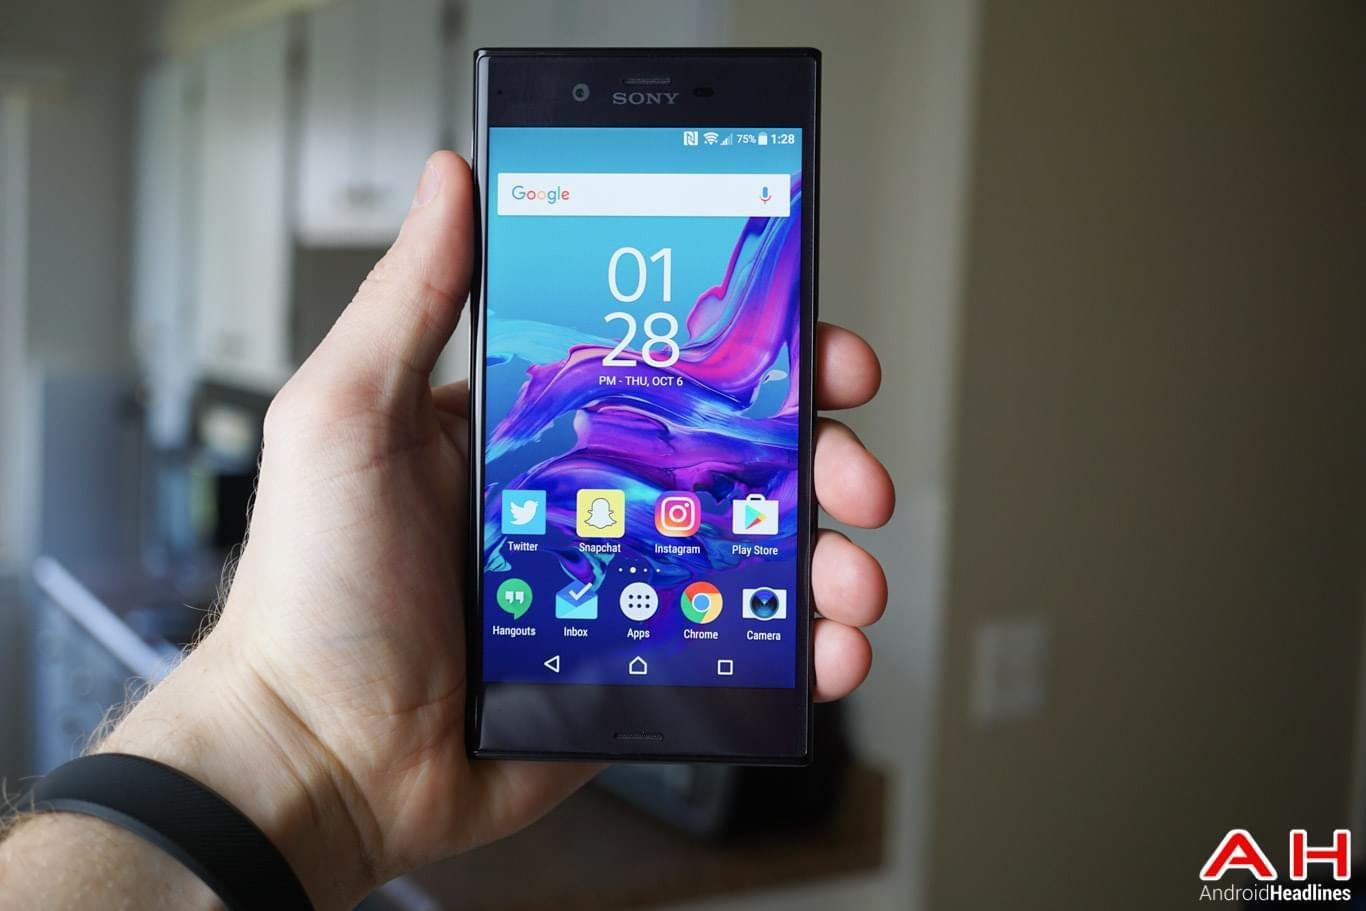 sony-xperia-xz-am-ah-1